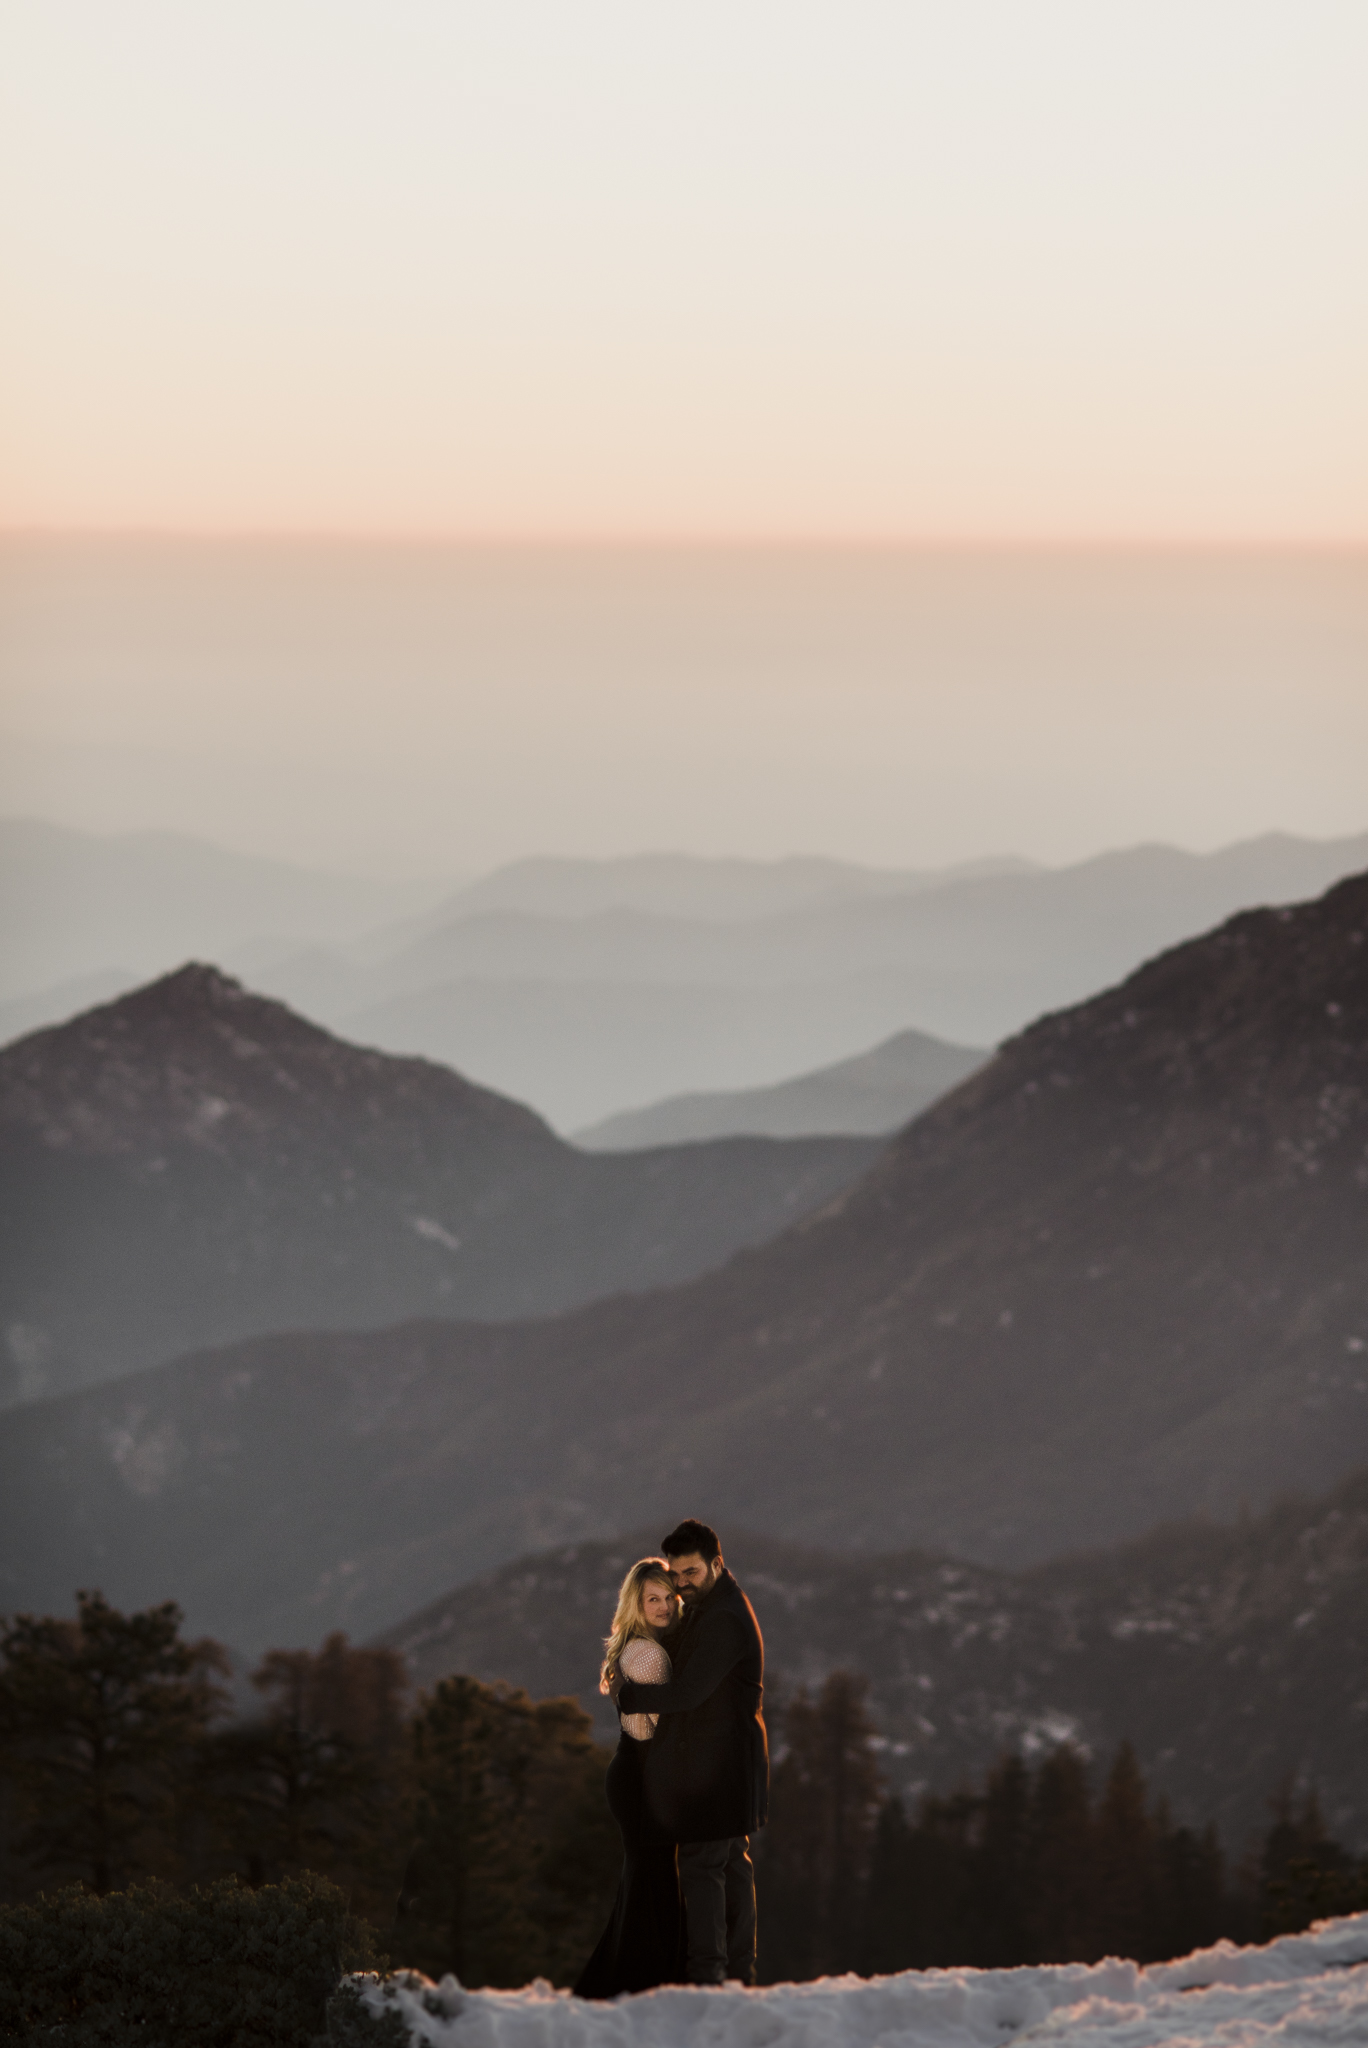 ©Isaiah-&-Taylor-Photography---George-&-Alyssa-Engagement---Sequoia-National-Park,-California-177.jpg